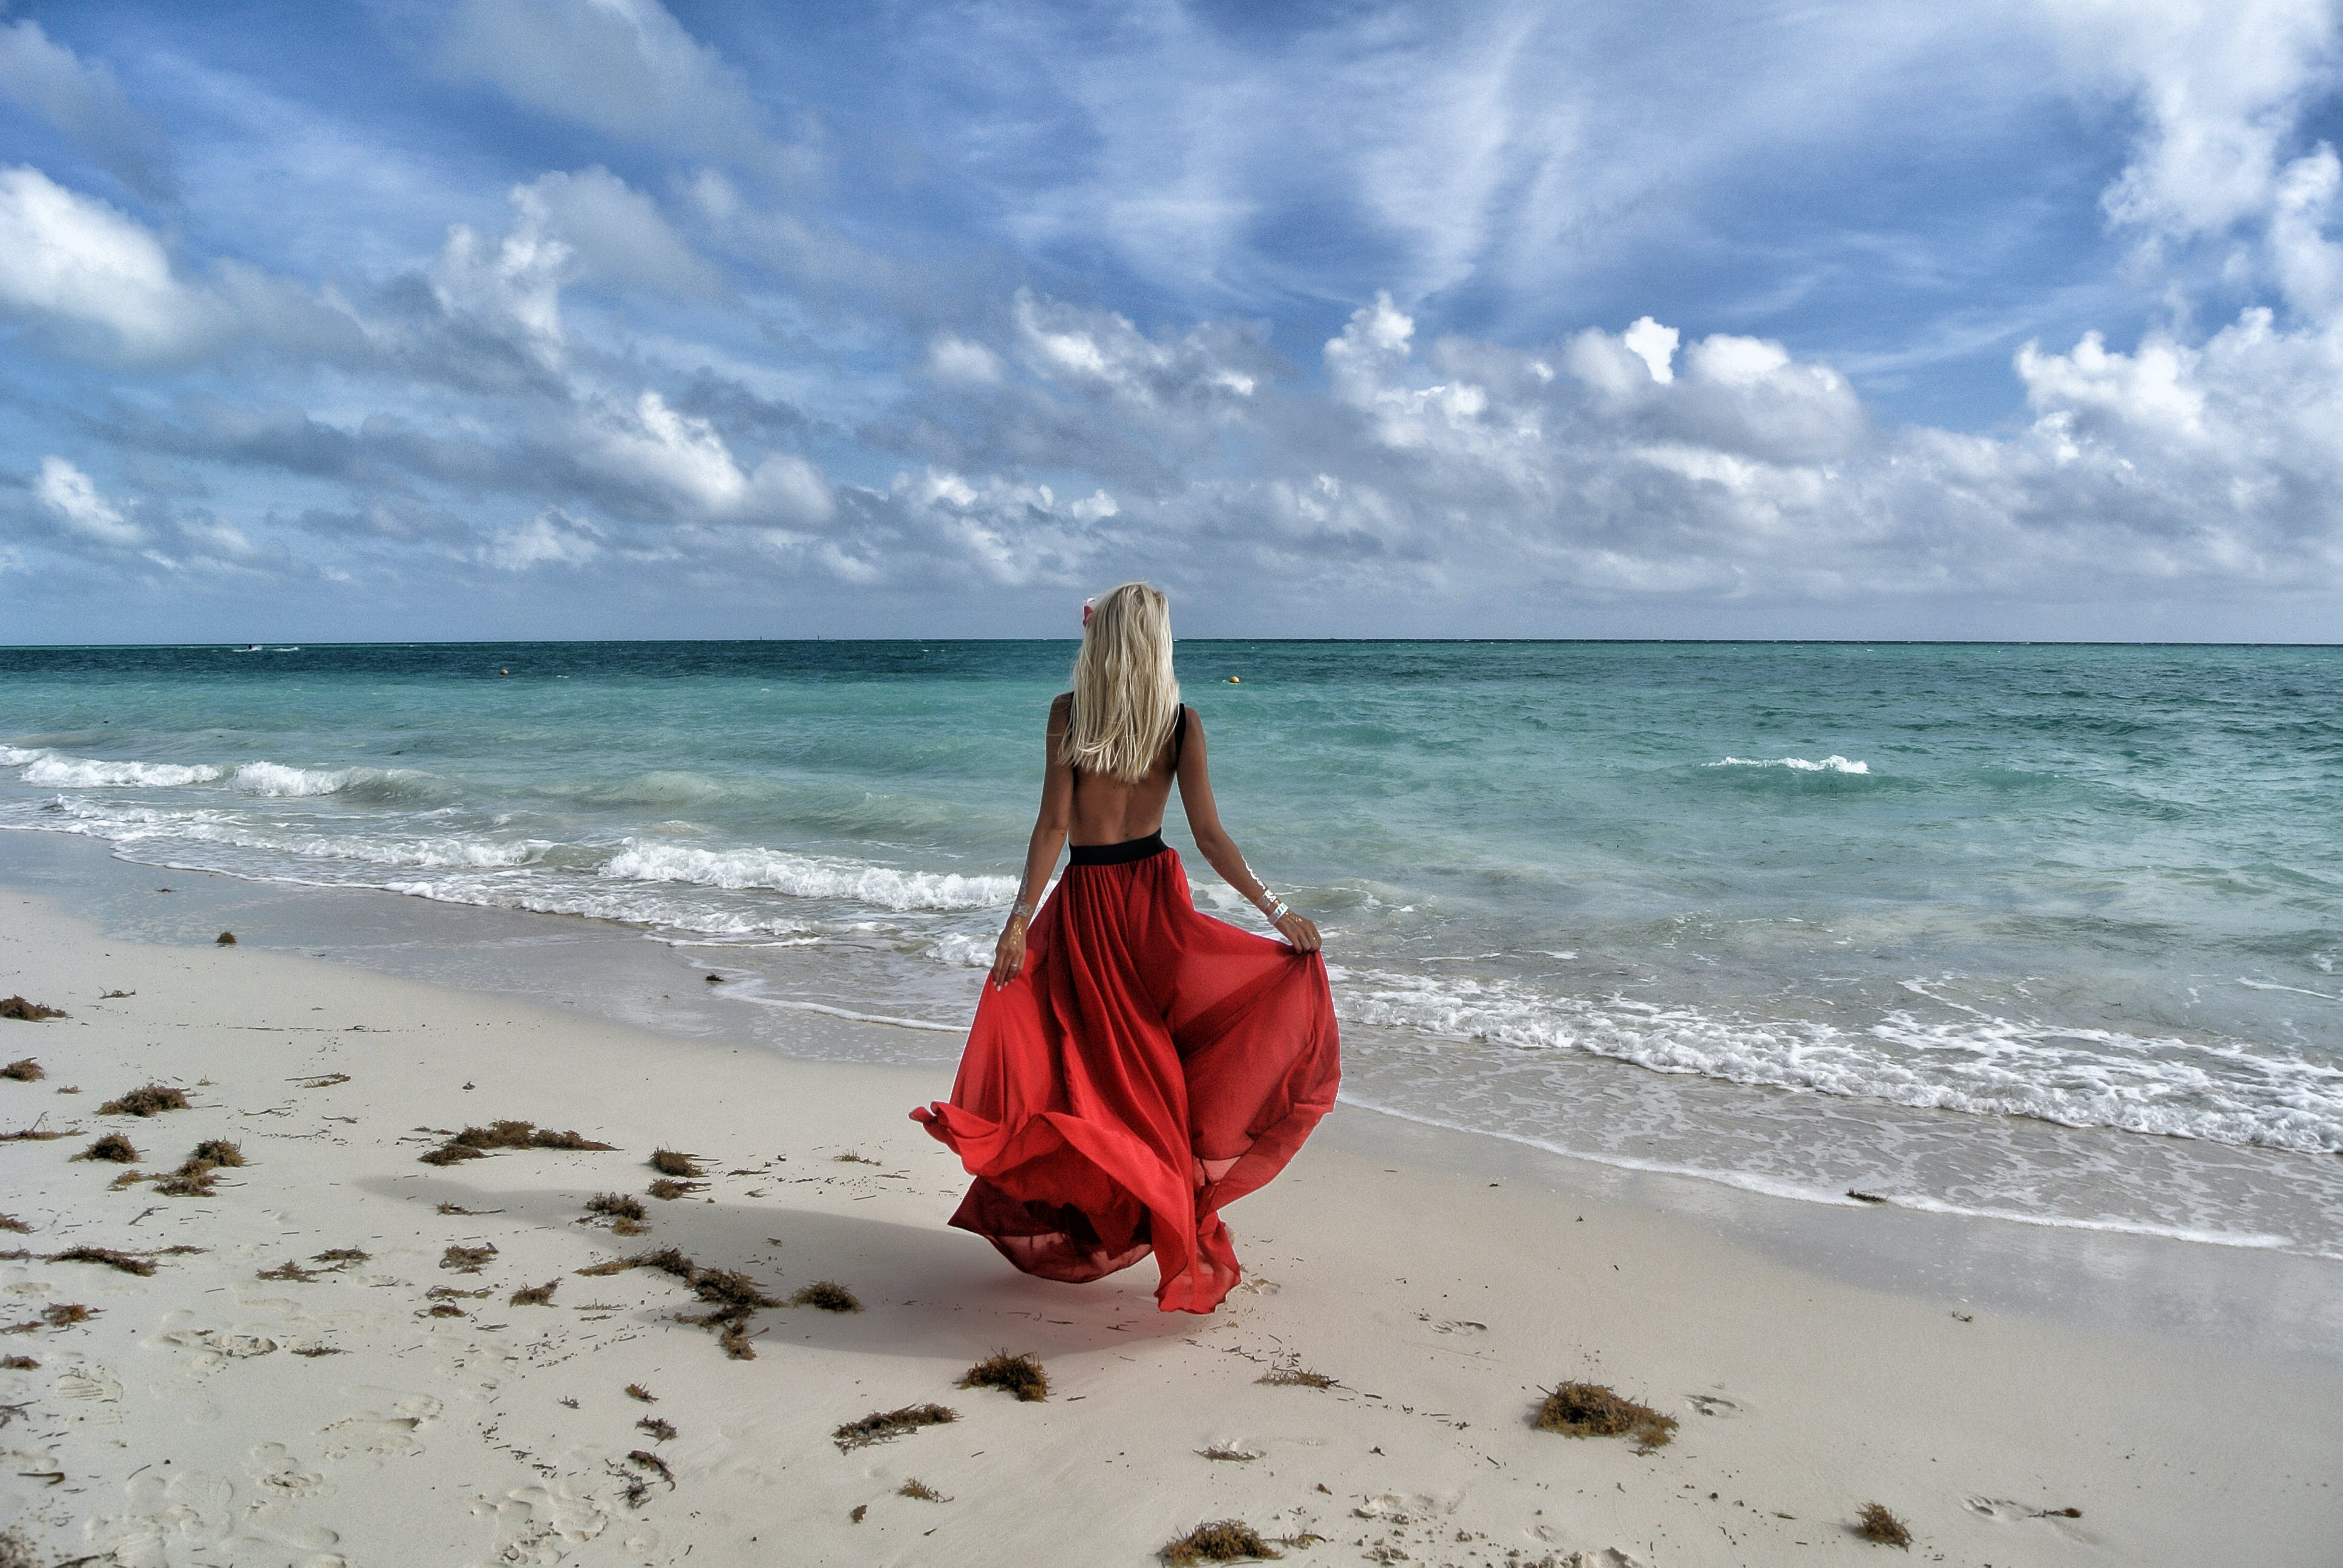 Woman Wearing Red Dress Walking on Seashore Under Blue and White Sky